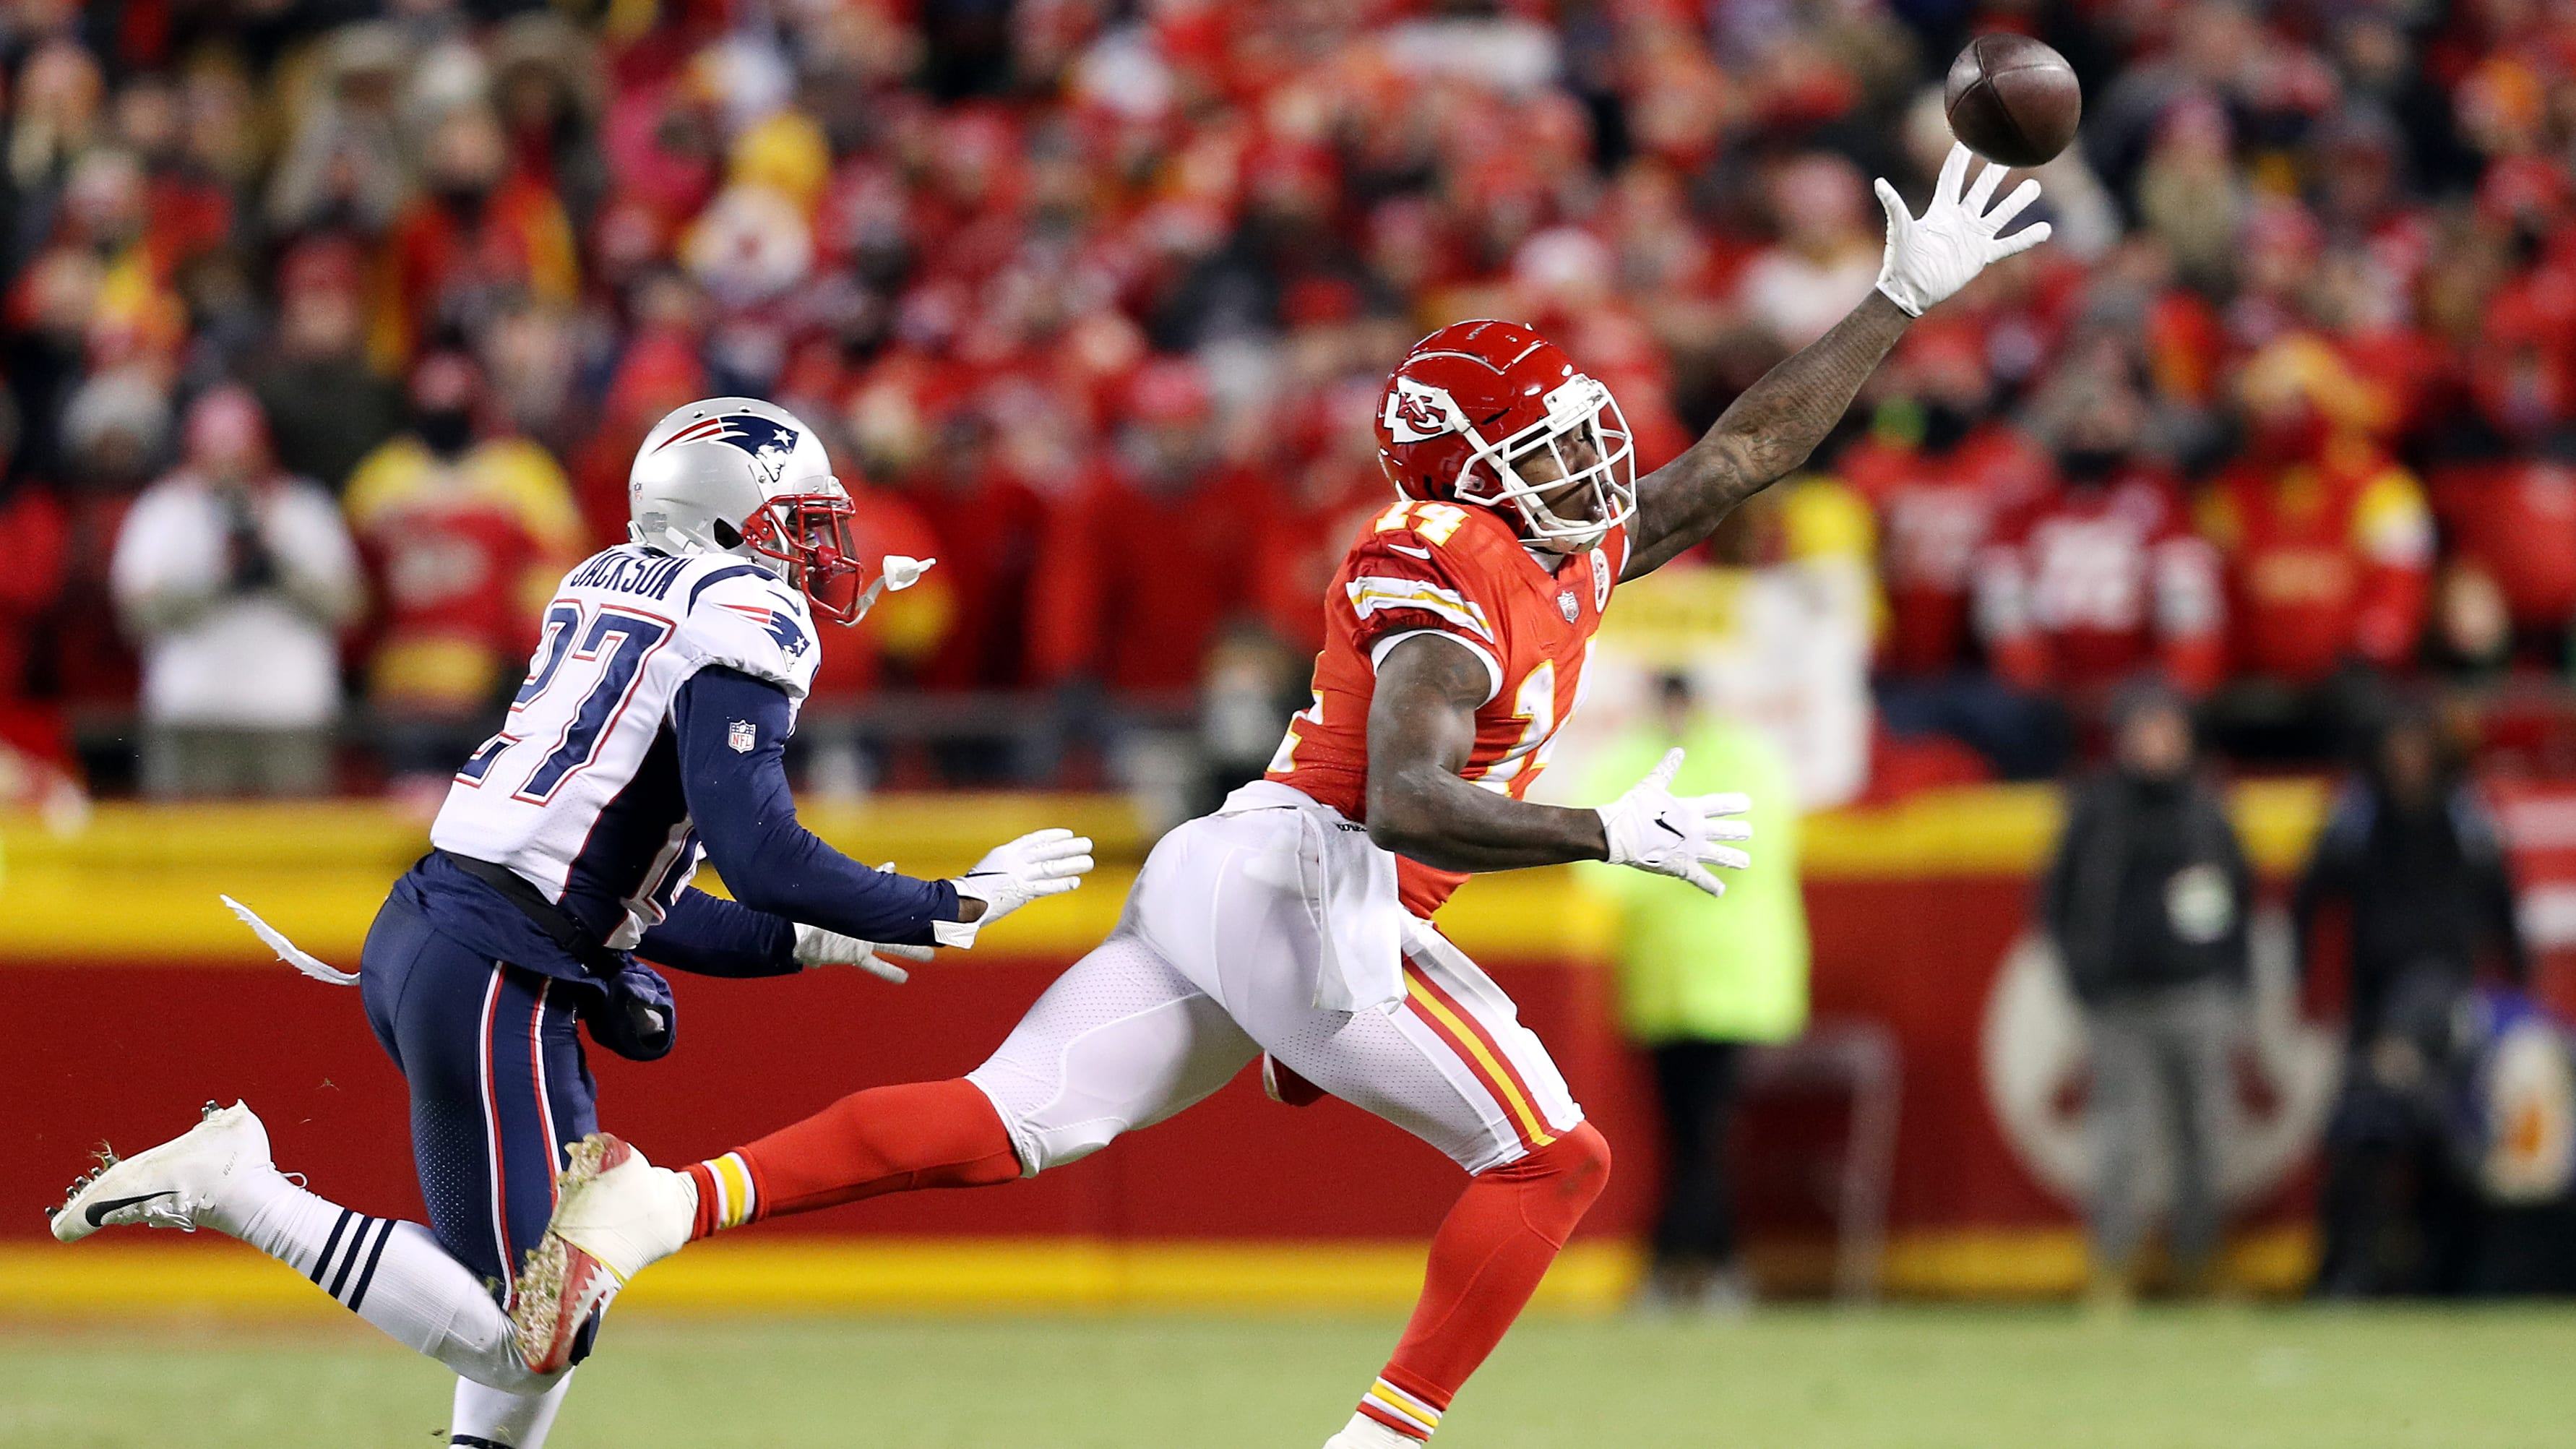 KANSAS CITY, MISSOURI - JANUARY 20: Sammy Watkins #14 of the Kansas City Chiefs reaches for a catch against J.C. Jackson #27 of the New England Patriots in the fourth quarter during the AFC Championship Game at Arrowhead Stadium on January 20, 2019 in Kansas City, Missouri. (Photo by Patrick Smith/Getty Images)